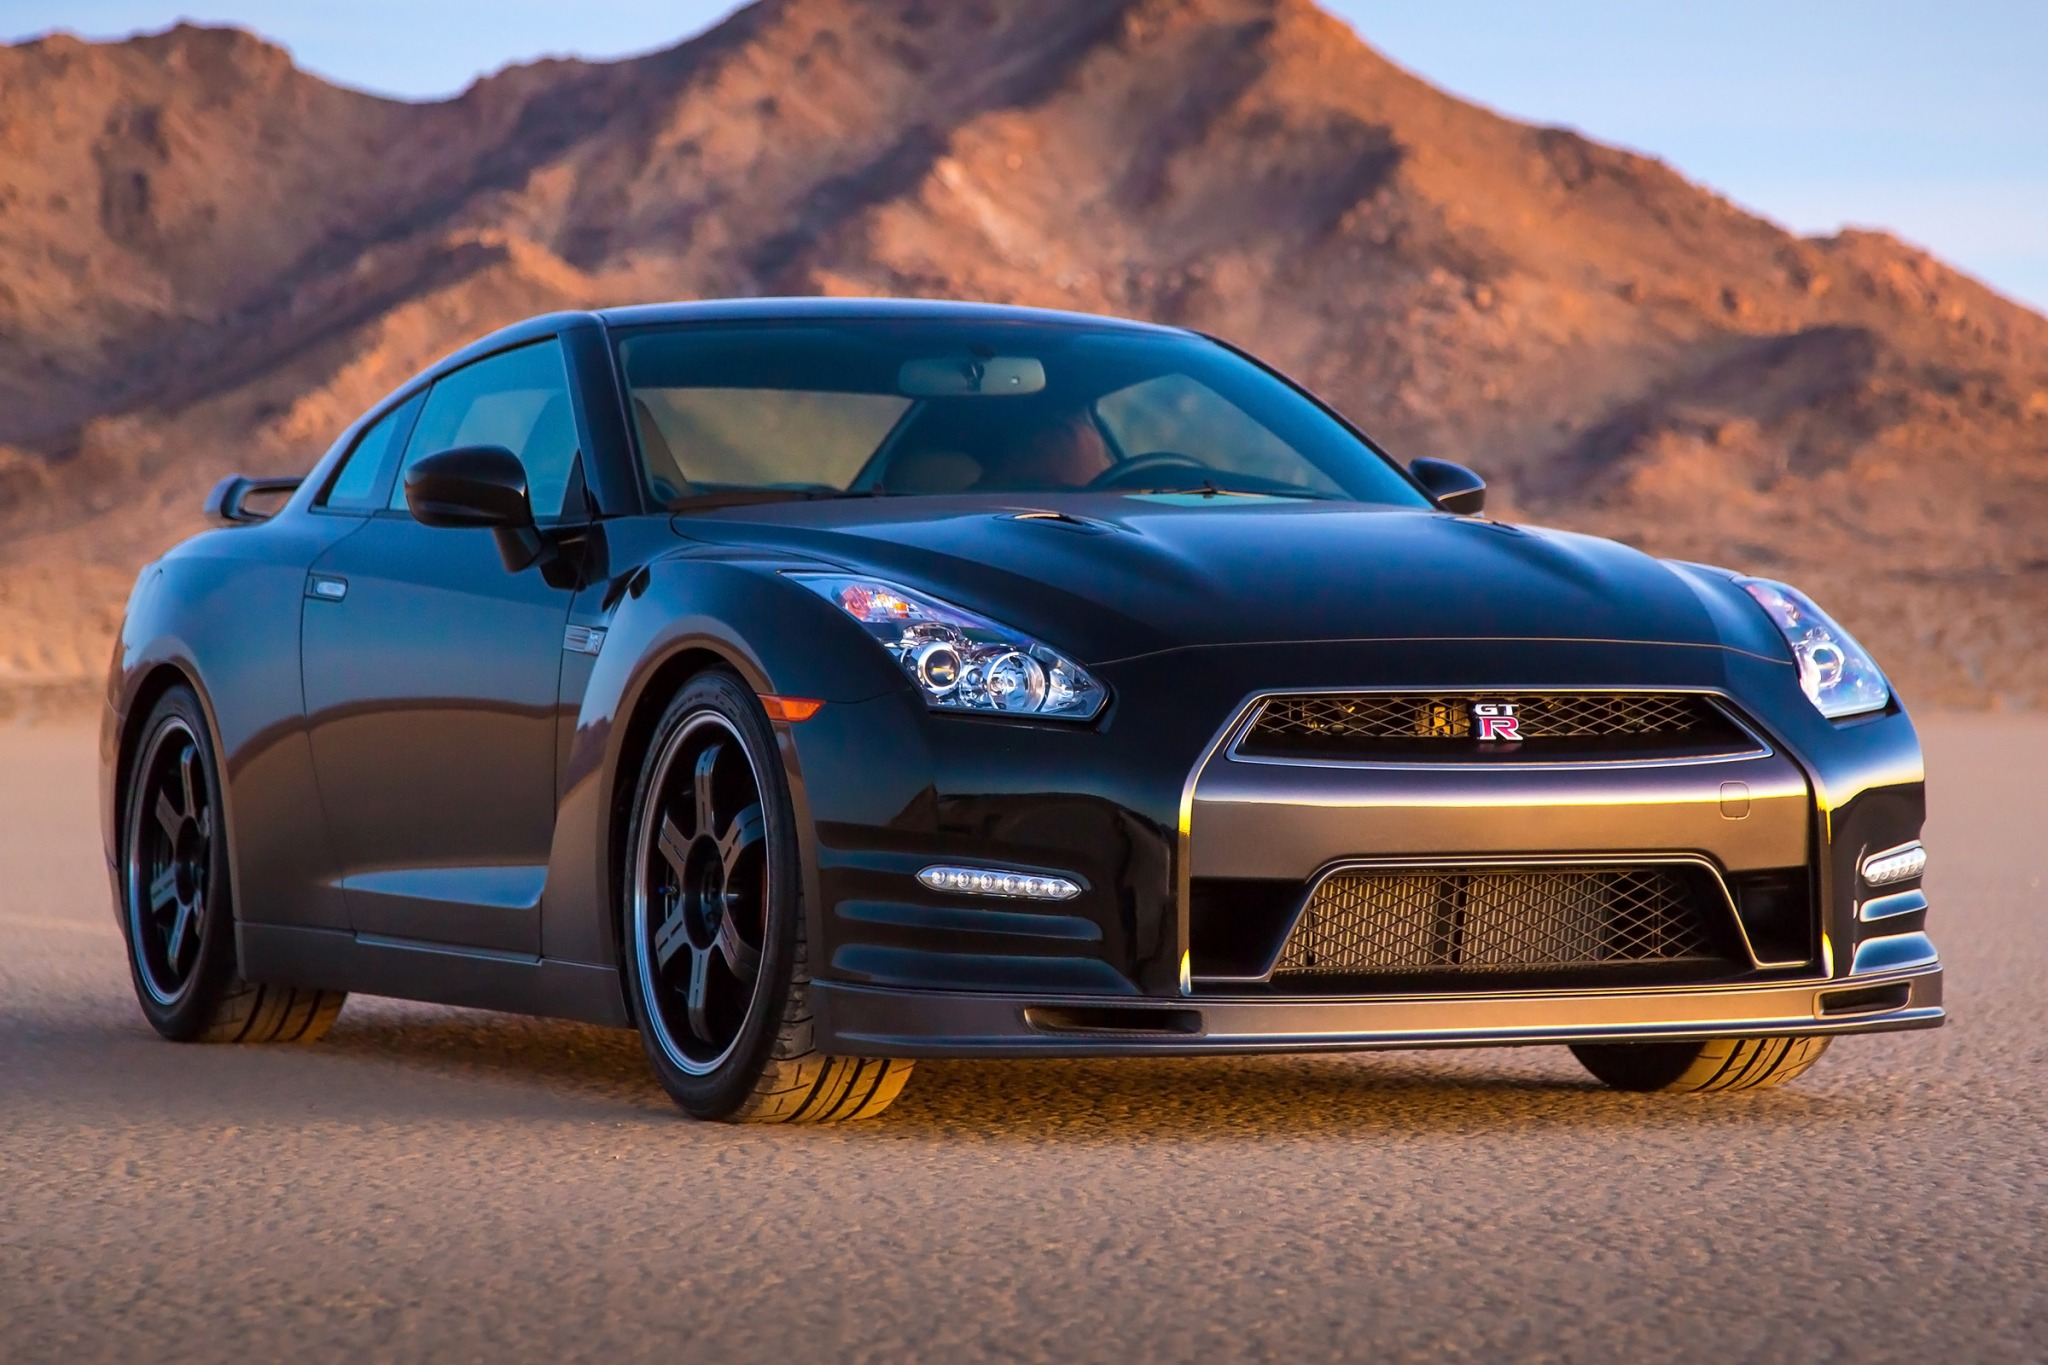 2014 nissan gt r coupe track edition fq oem 2 2048